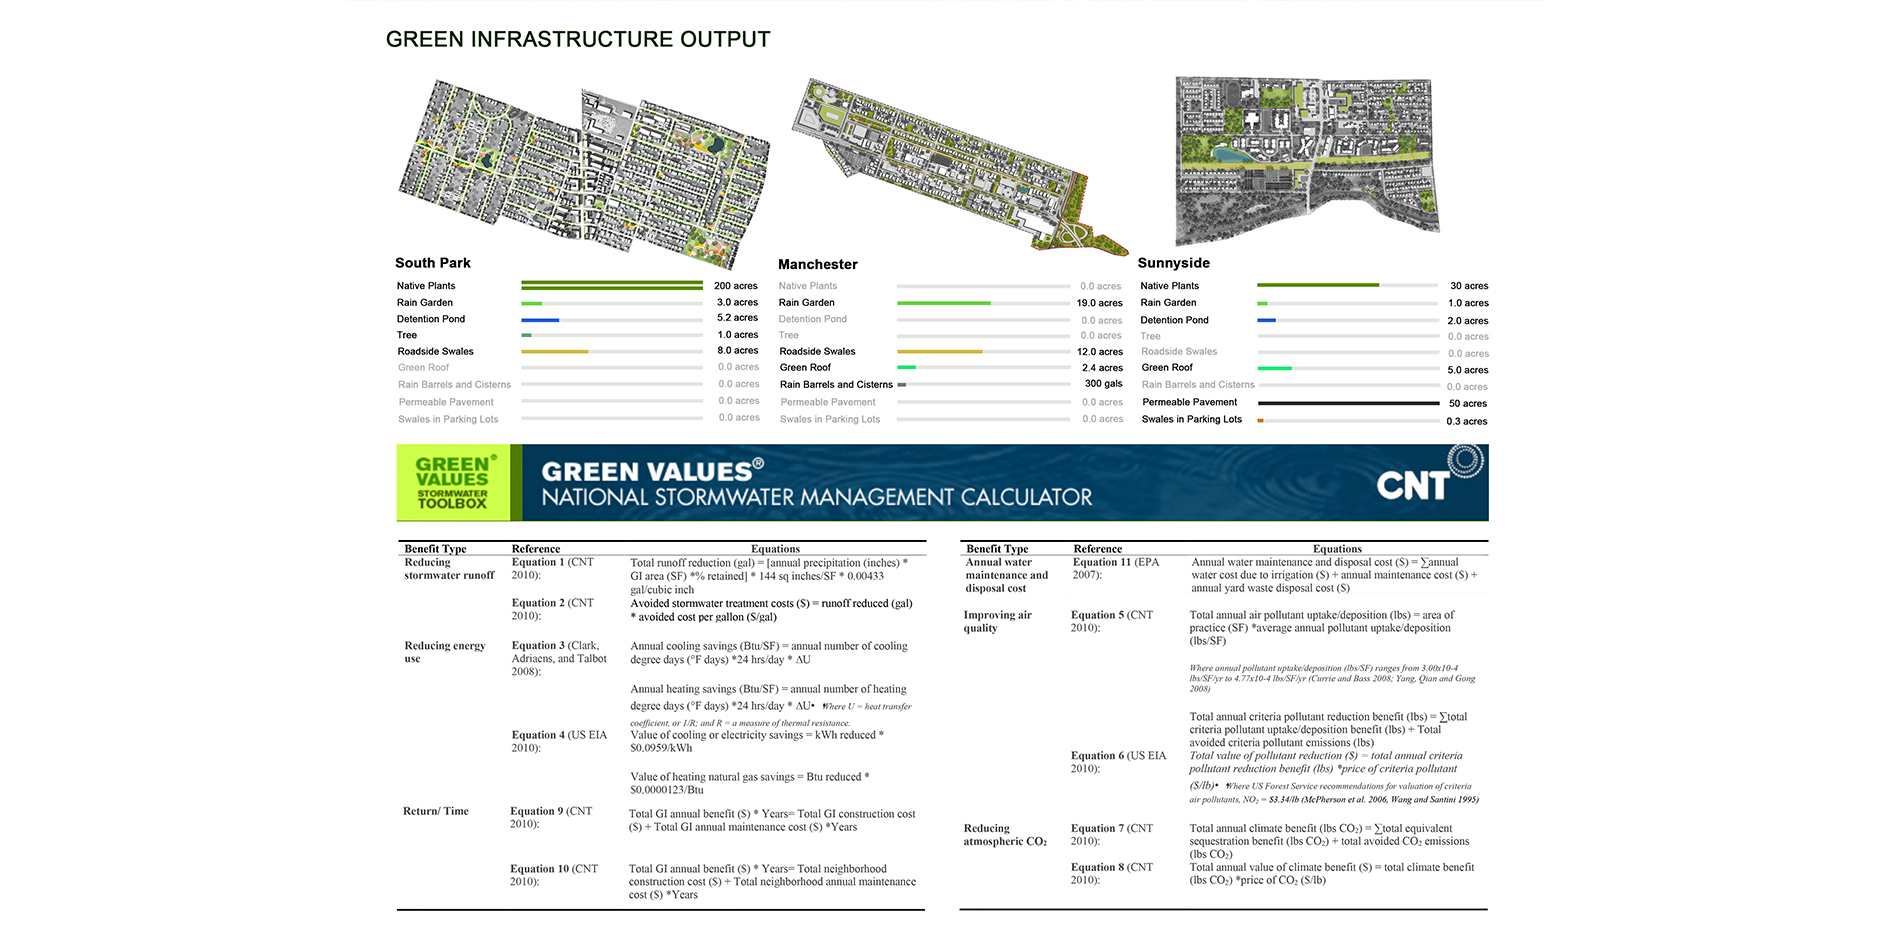 Green infrastructure output